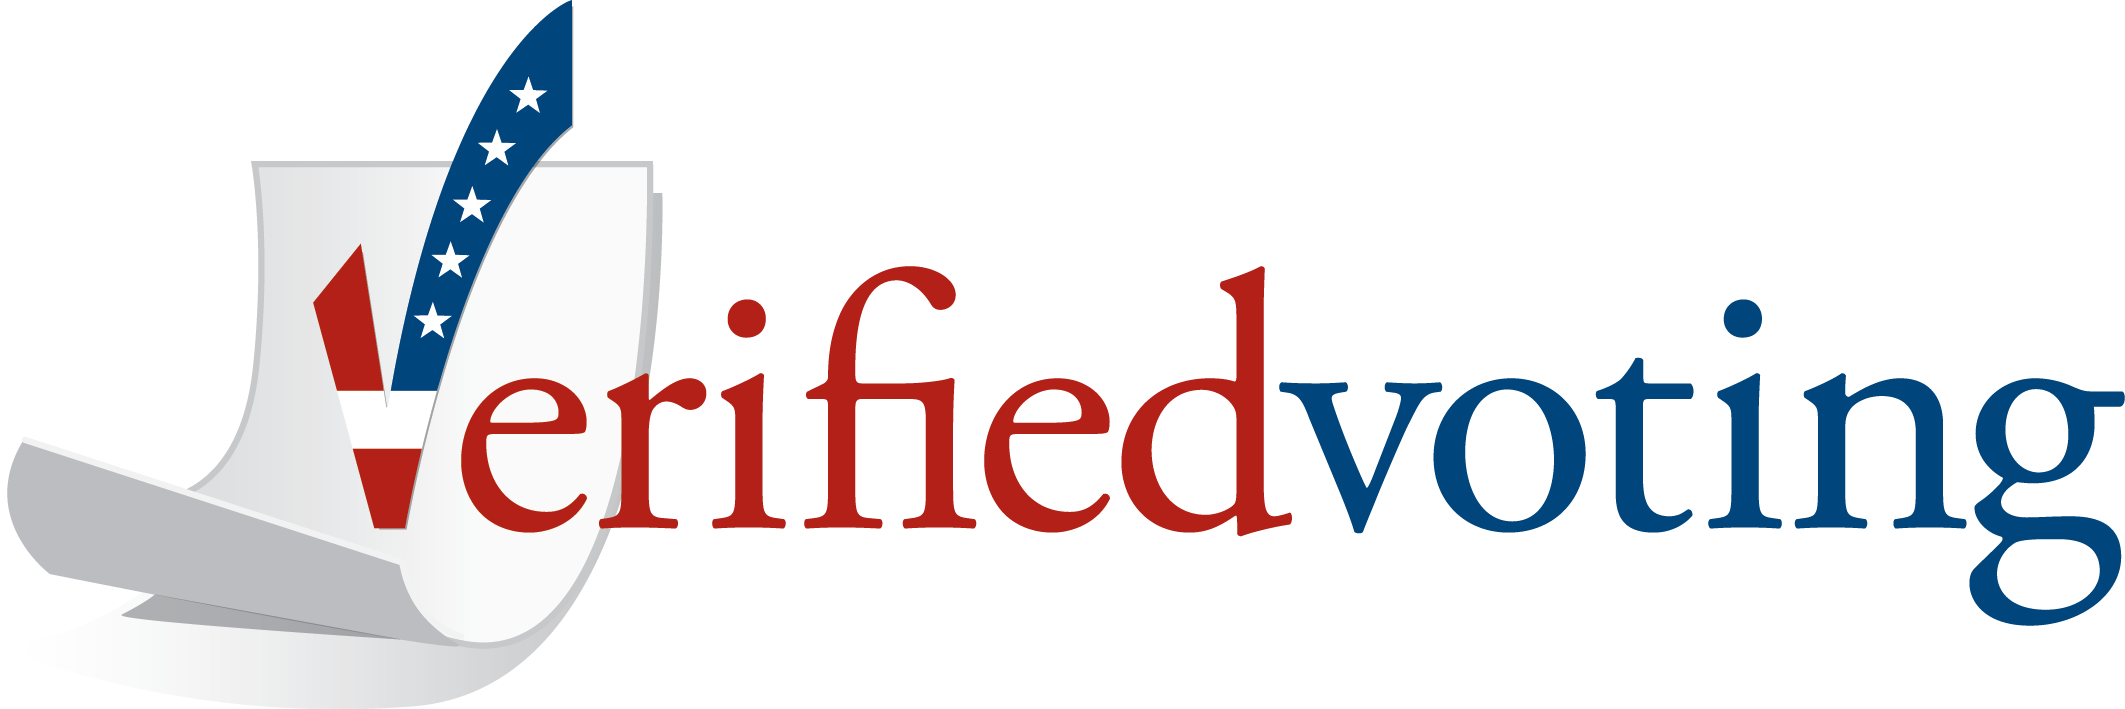 VerifiedVoting_Logo_VVonly.png